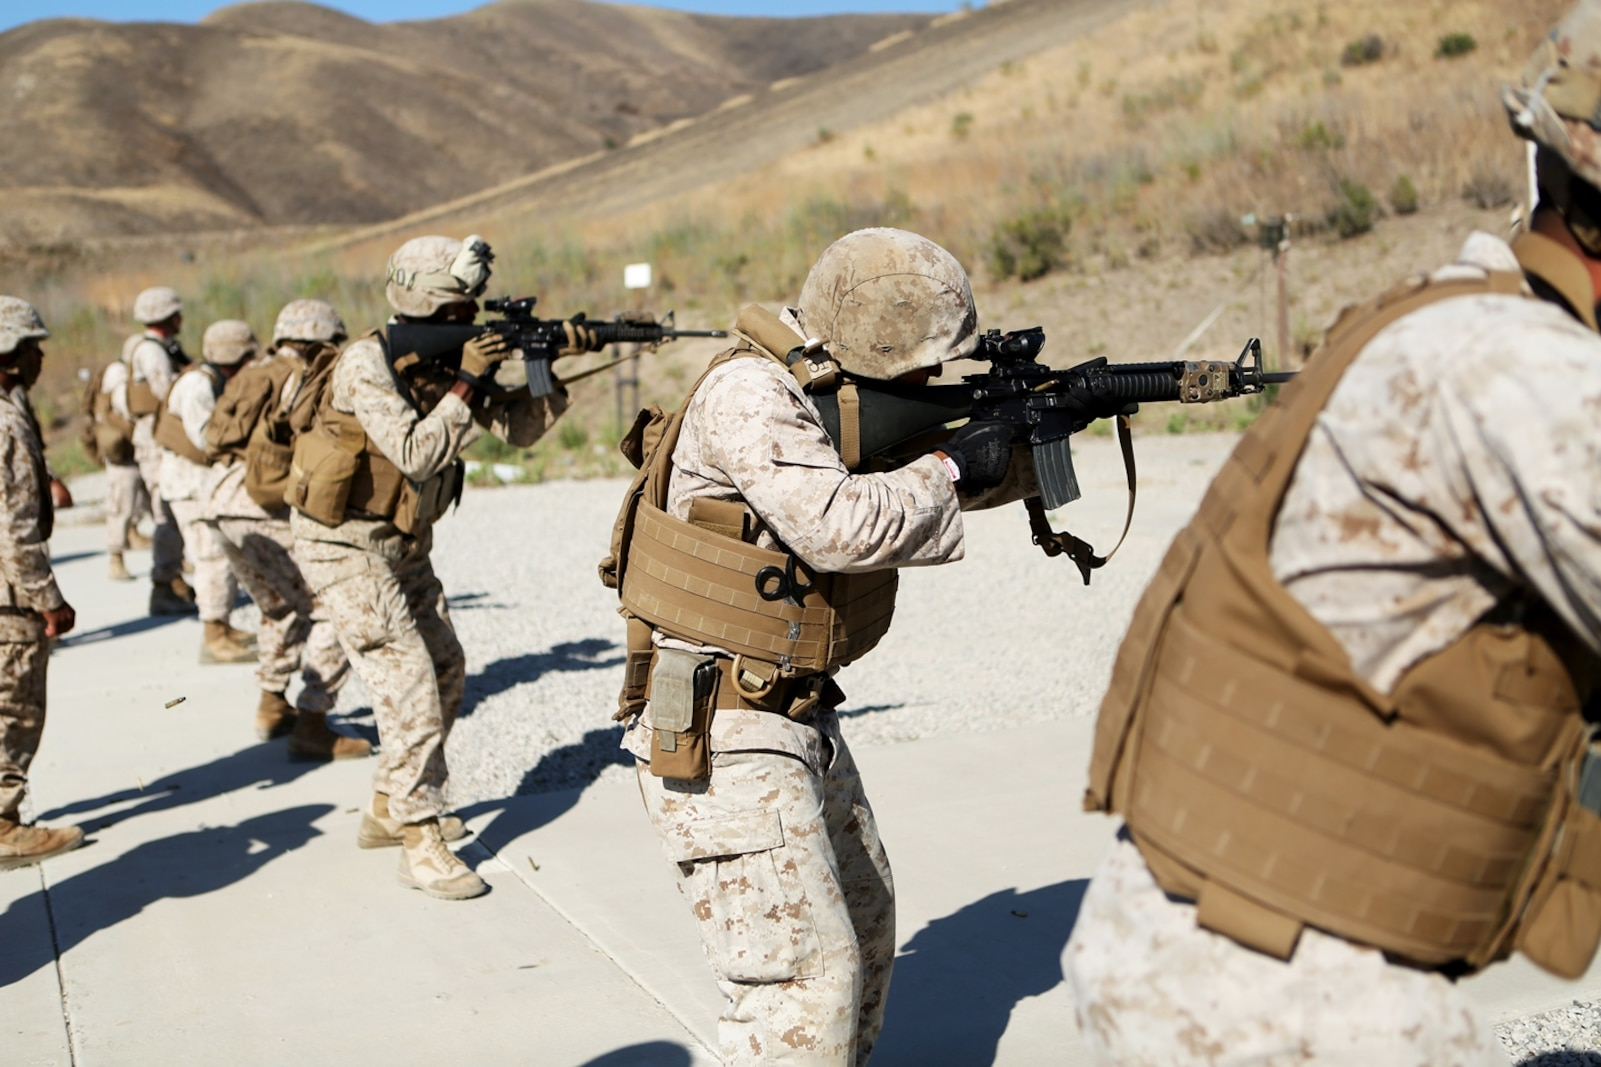 U.S. Marines with Combat Logistics Battalion 1, 1st Marine Logistics Group, fire their weapons in the table three course of fire during the Combat Leader's Course aboard Camp Pendleton Calif., from June 13-24, 2016. Combat Leader's Course is an advanced combat skills course instructed by the Combat Skills Training School, designed to teach Marines tactical leadership principles, machine gun functions, combat orders and various other skills. (U.S. Marine Corps photo by Sgt. Carson Gramley/released)